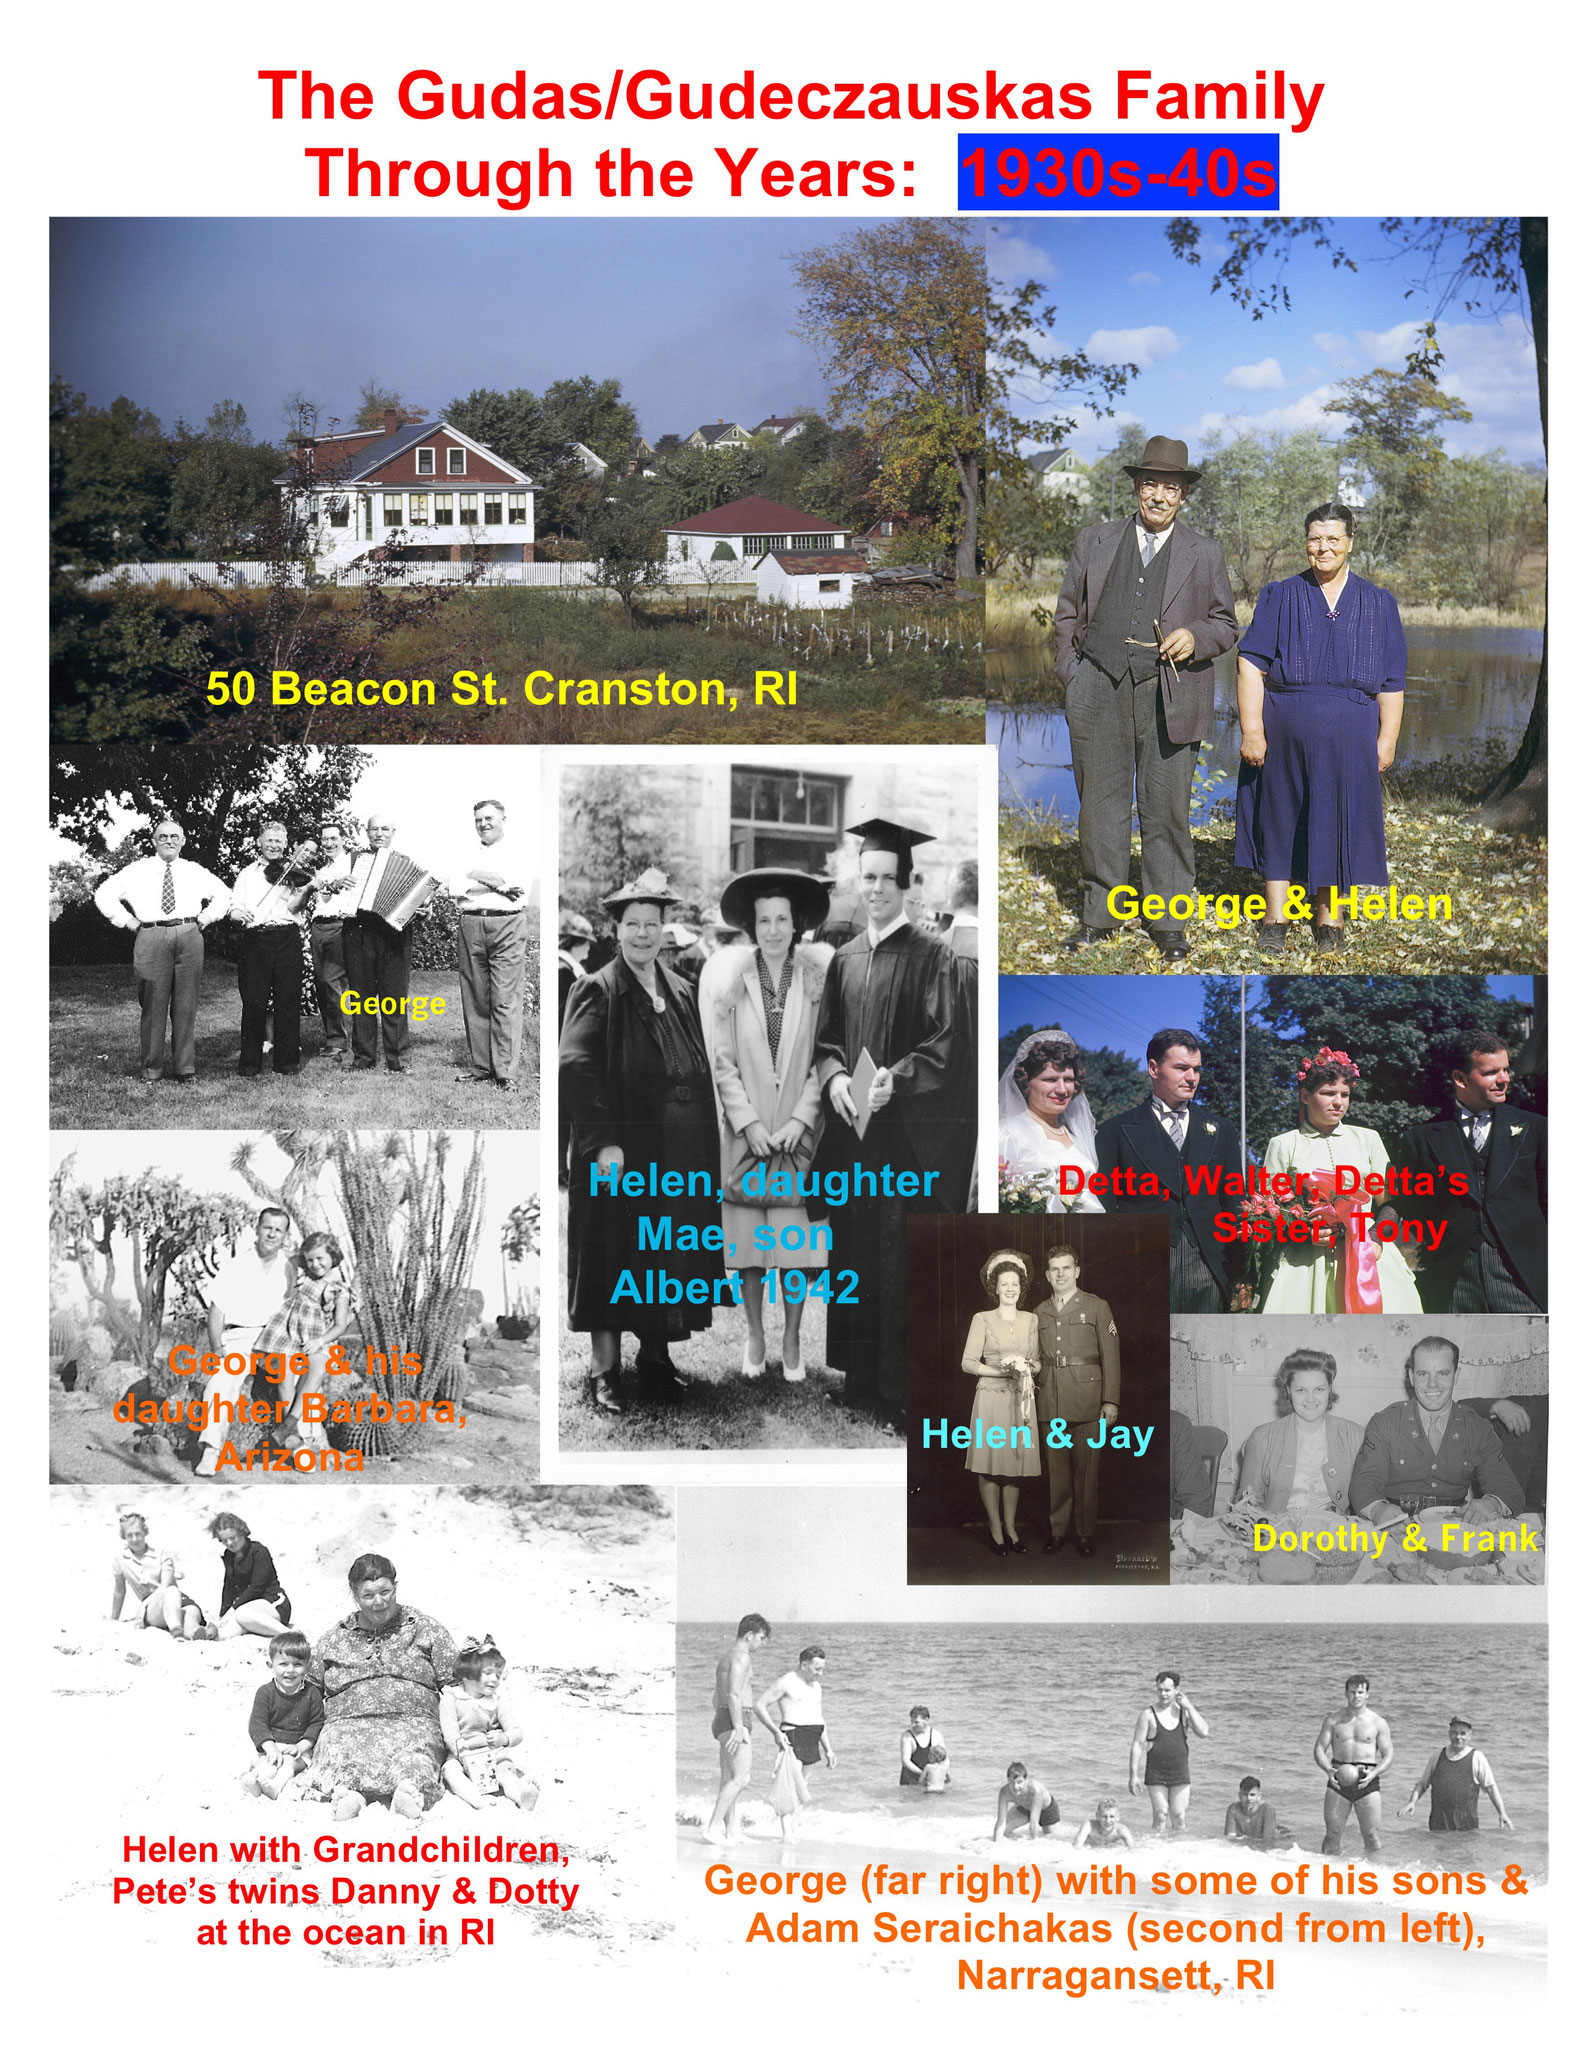 Lorraine put together collages of family pictures showing the Gudas/Gudeczauskas family over the last 90 years!